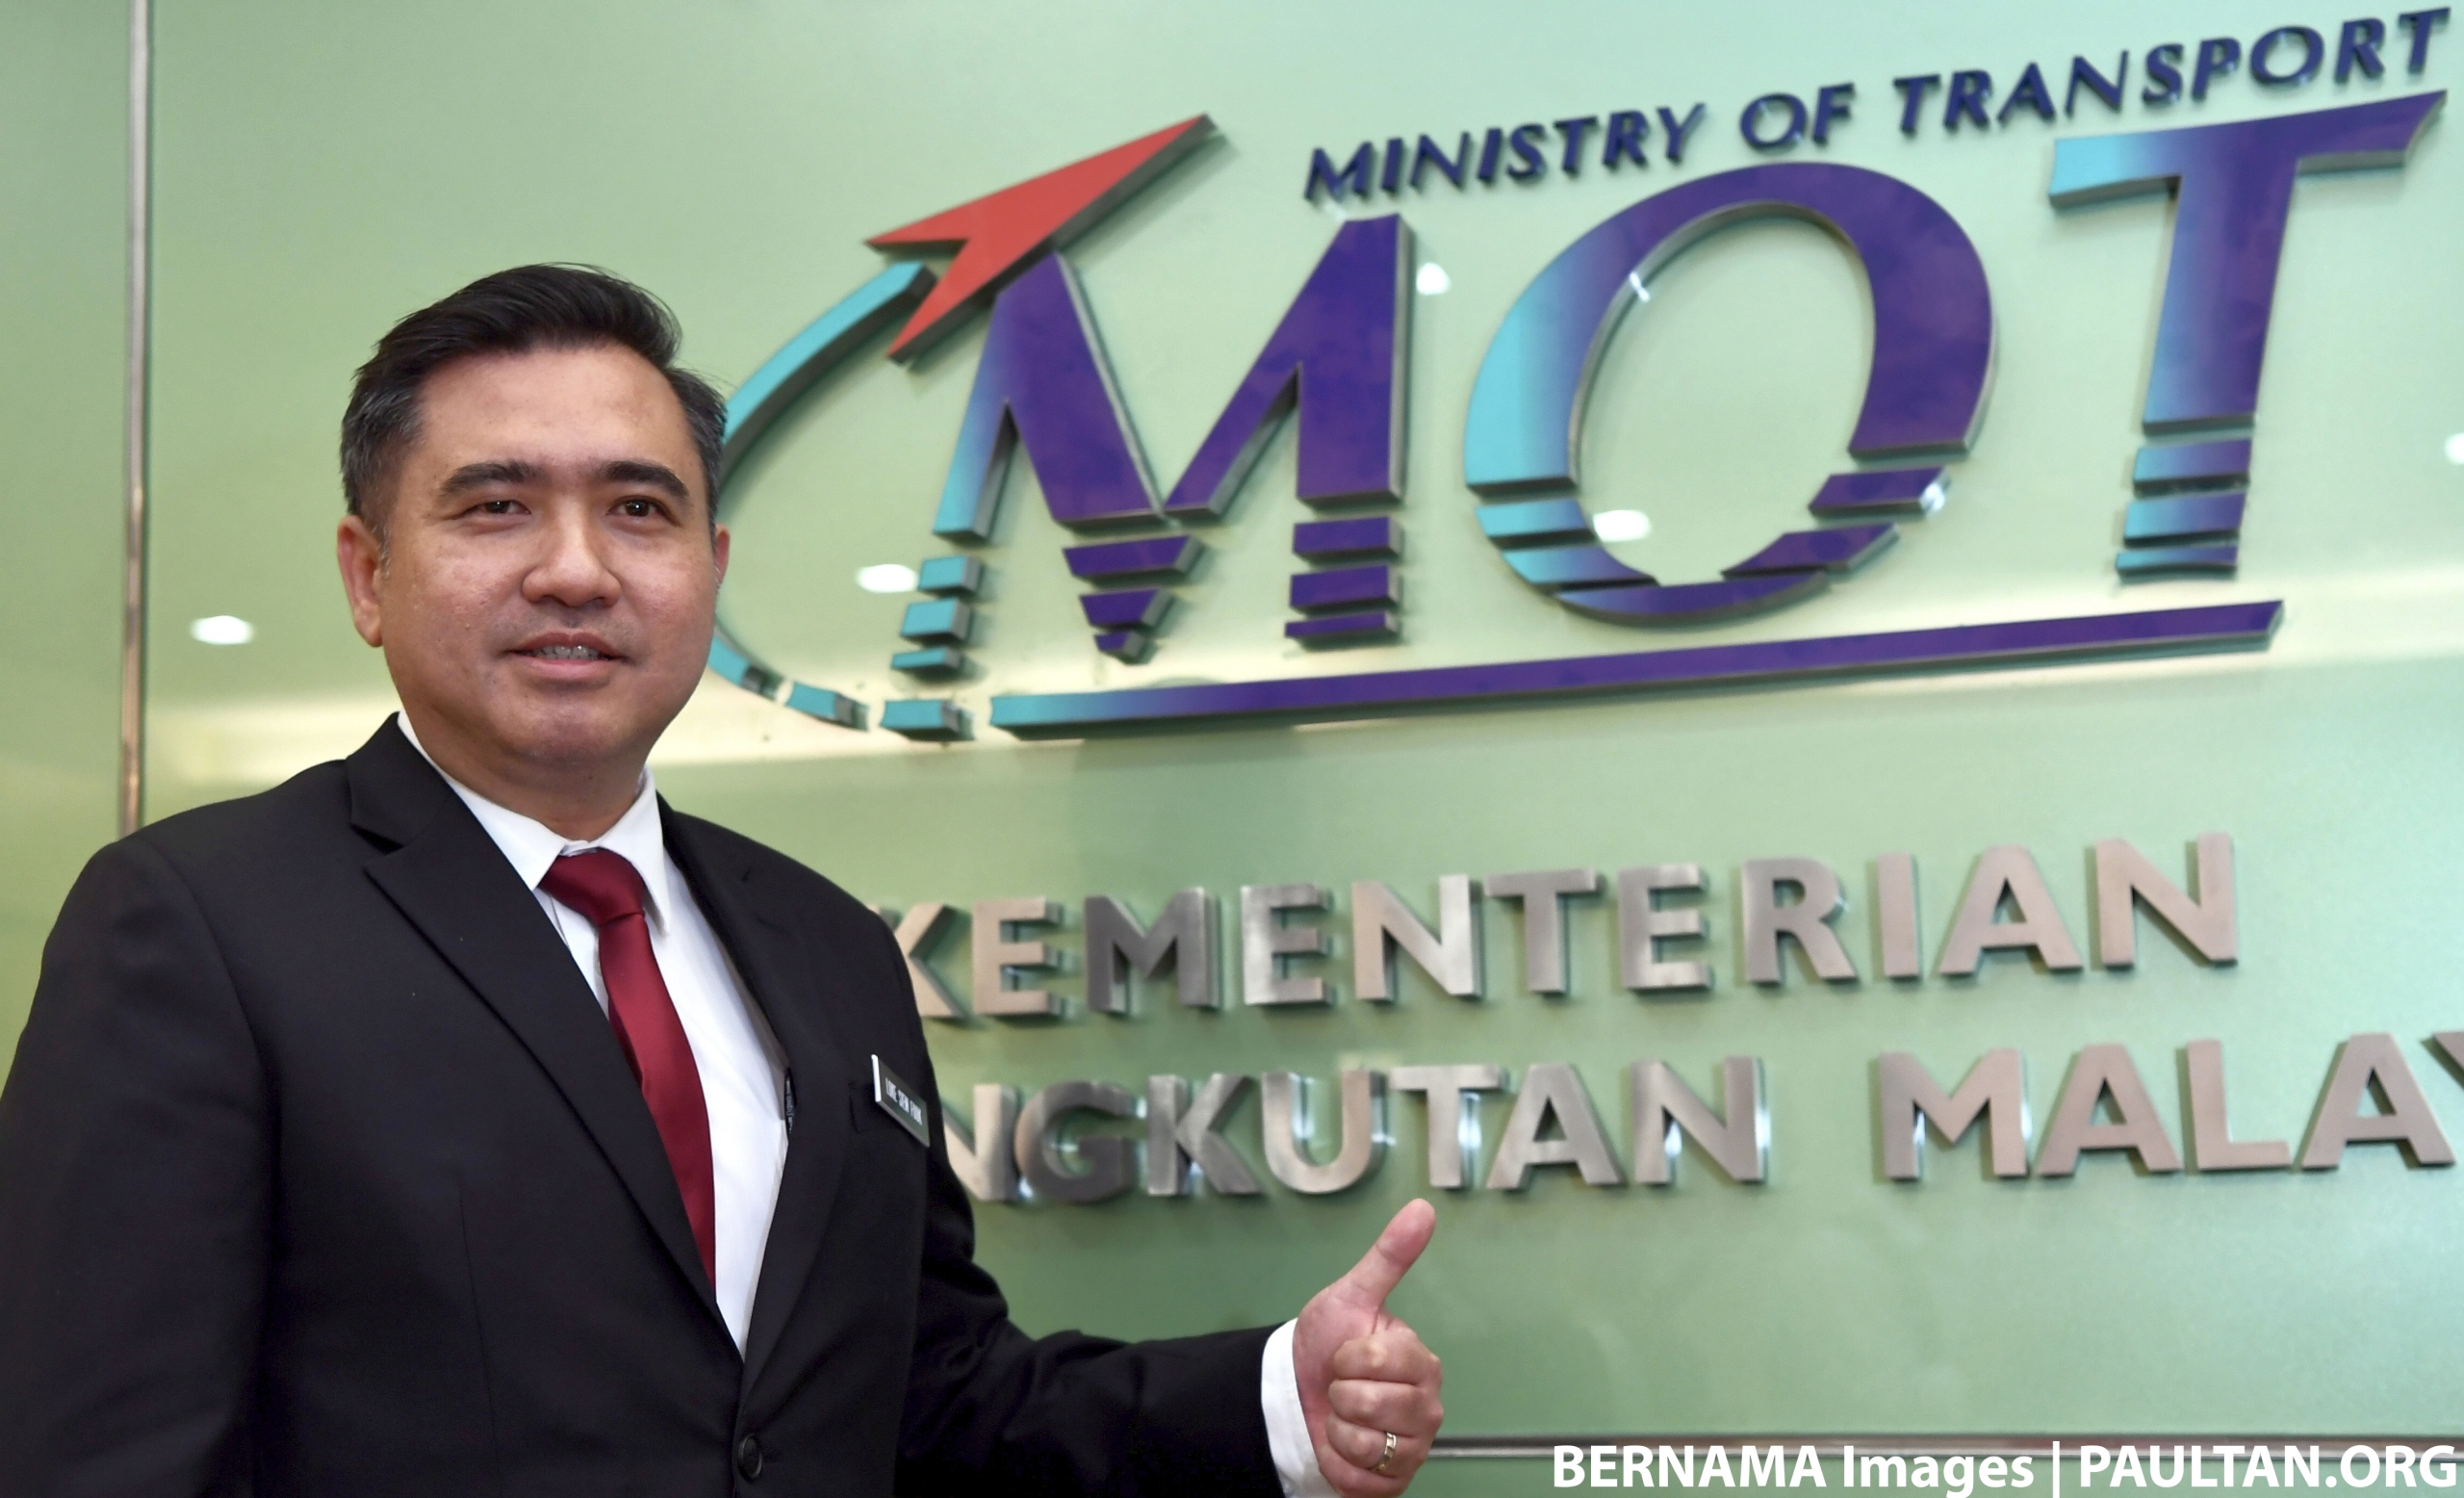 Ride-hailing not banned, but must be fair to taxis: Loke